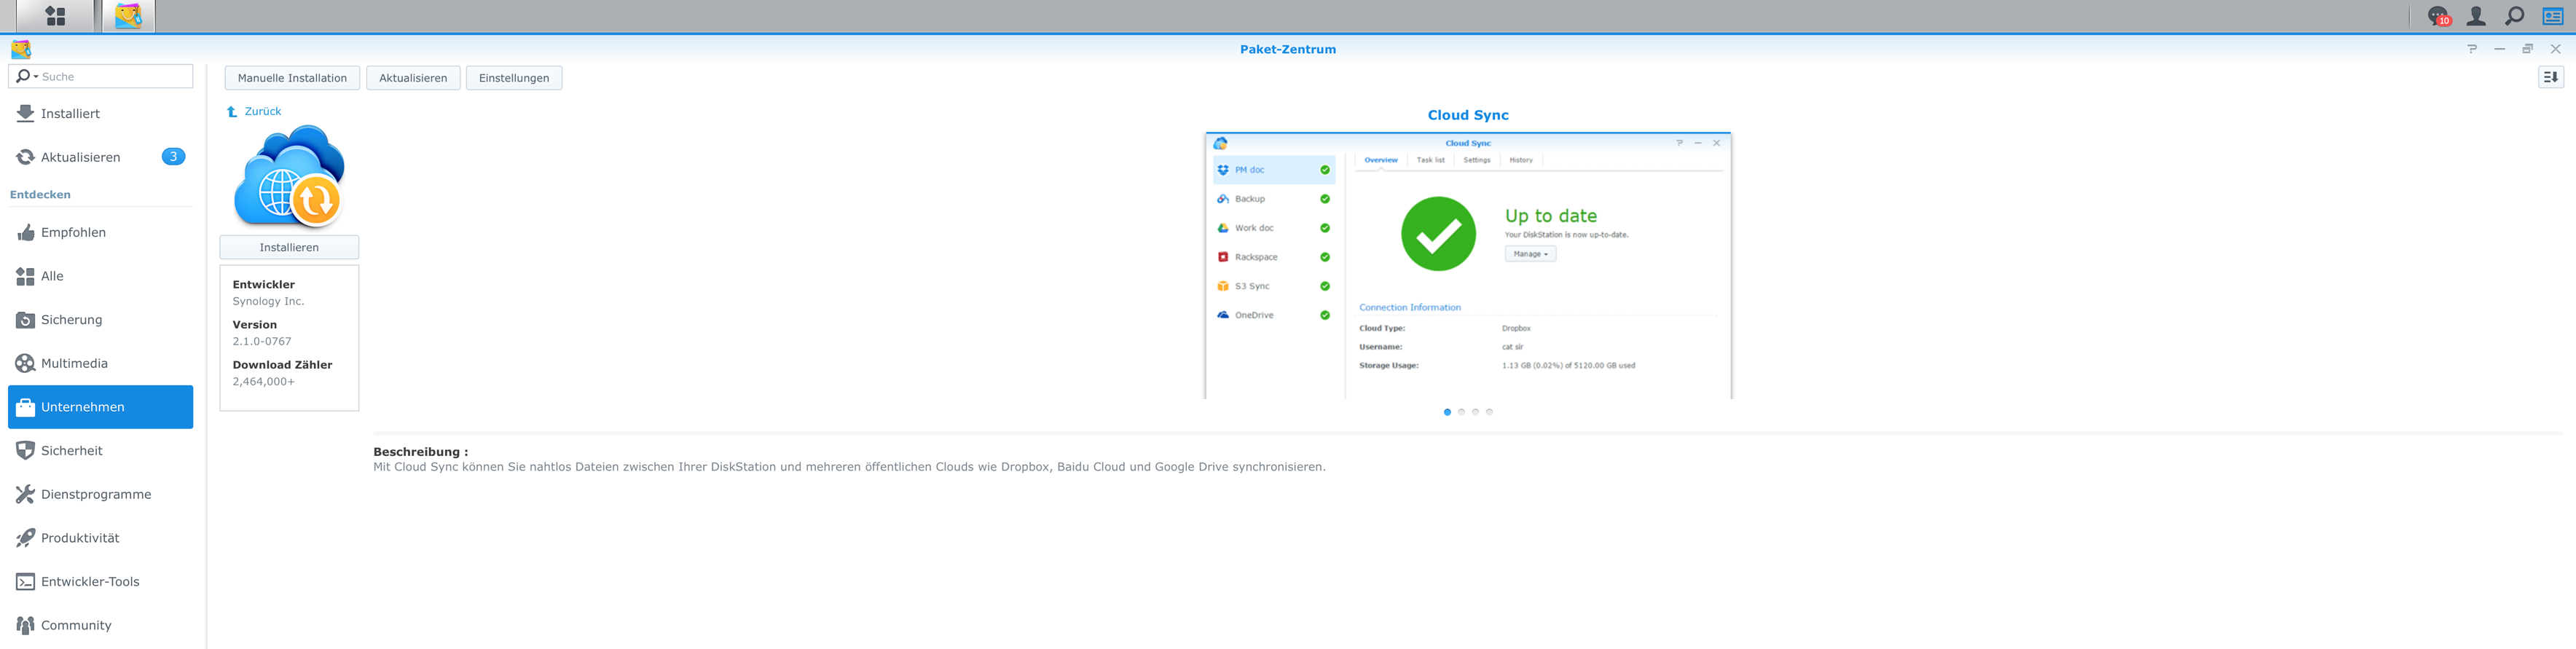 synology_dsm_6_cloud_sync2